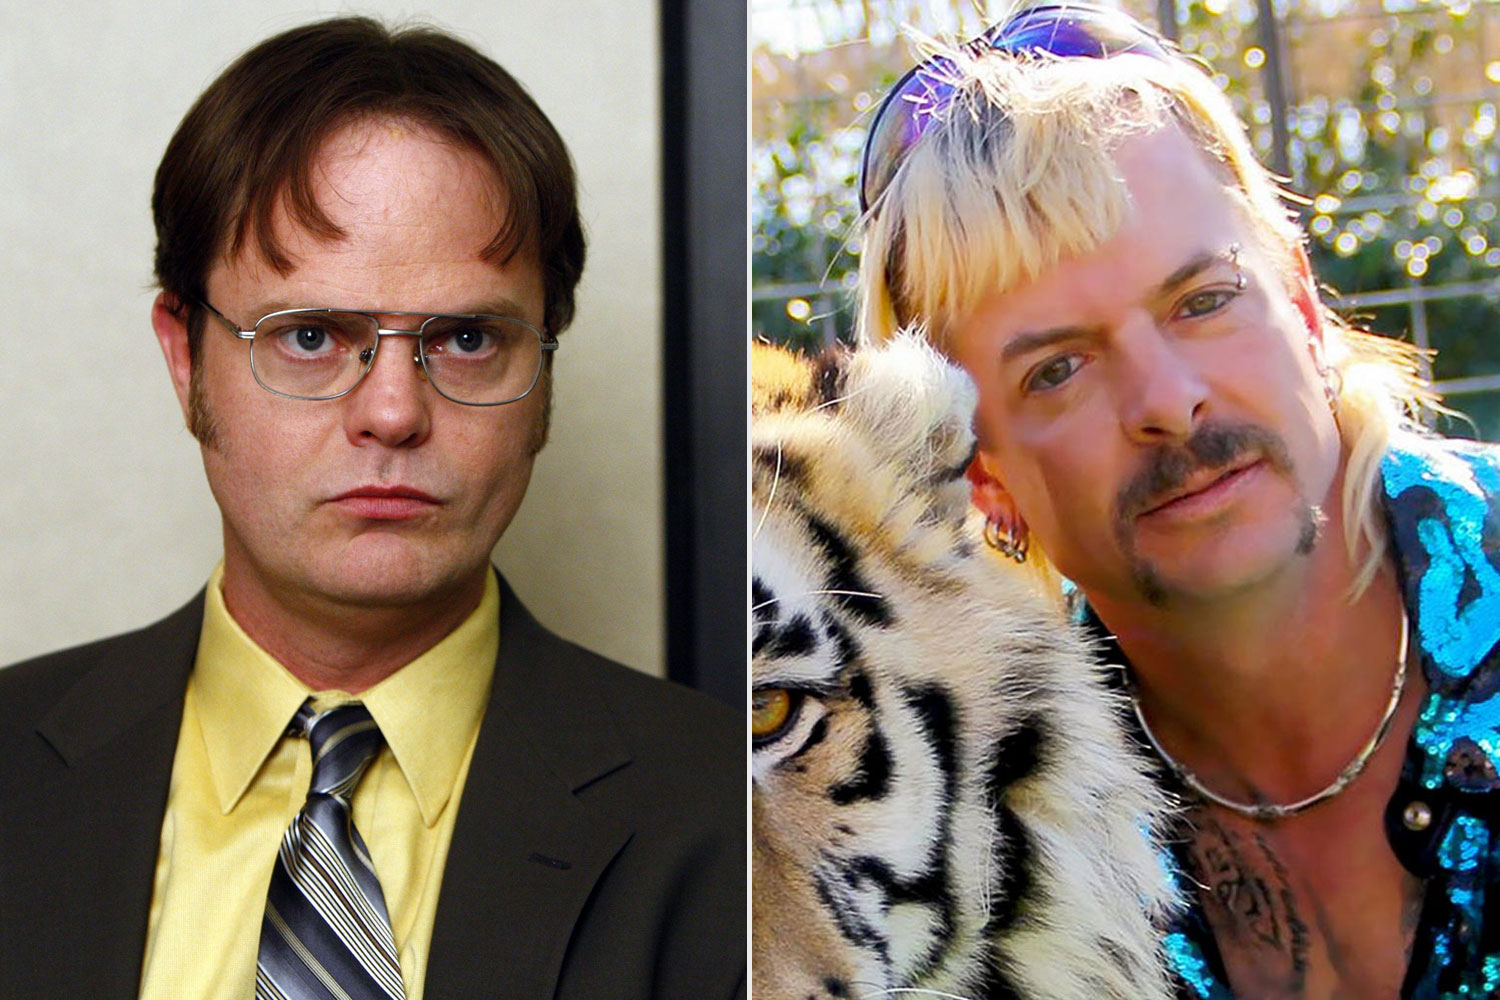 Dwight Schrute, Tiger King